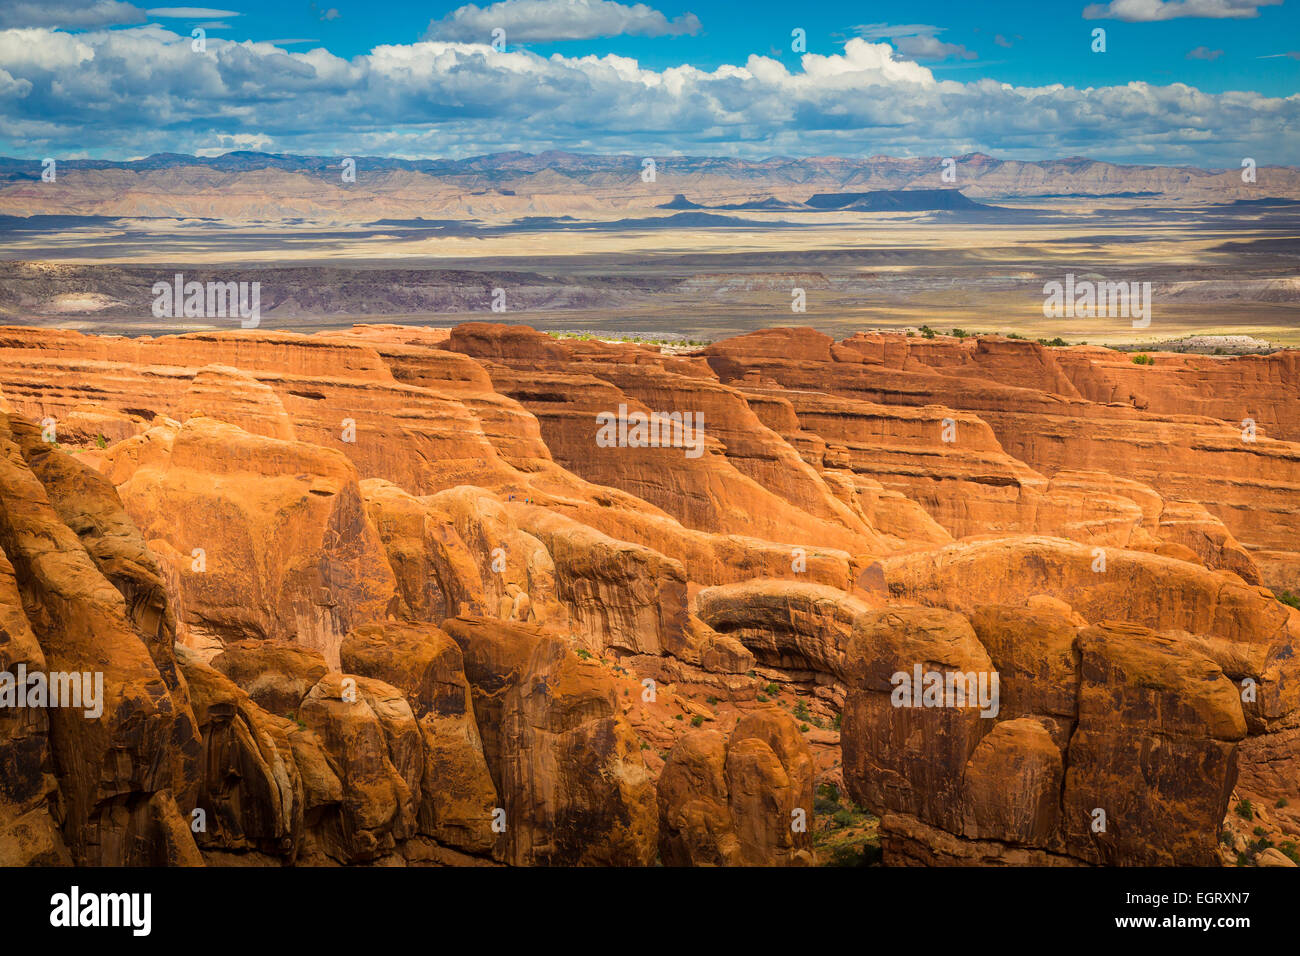 Arches National Park is a US National Park in eastern Utah. - Stock Image